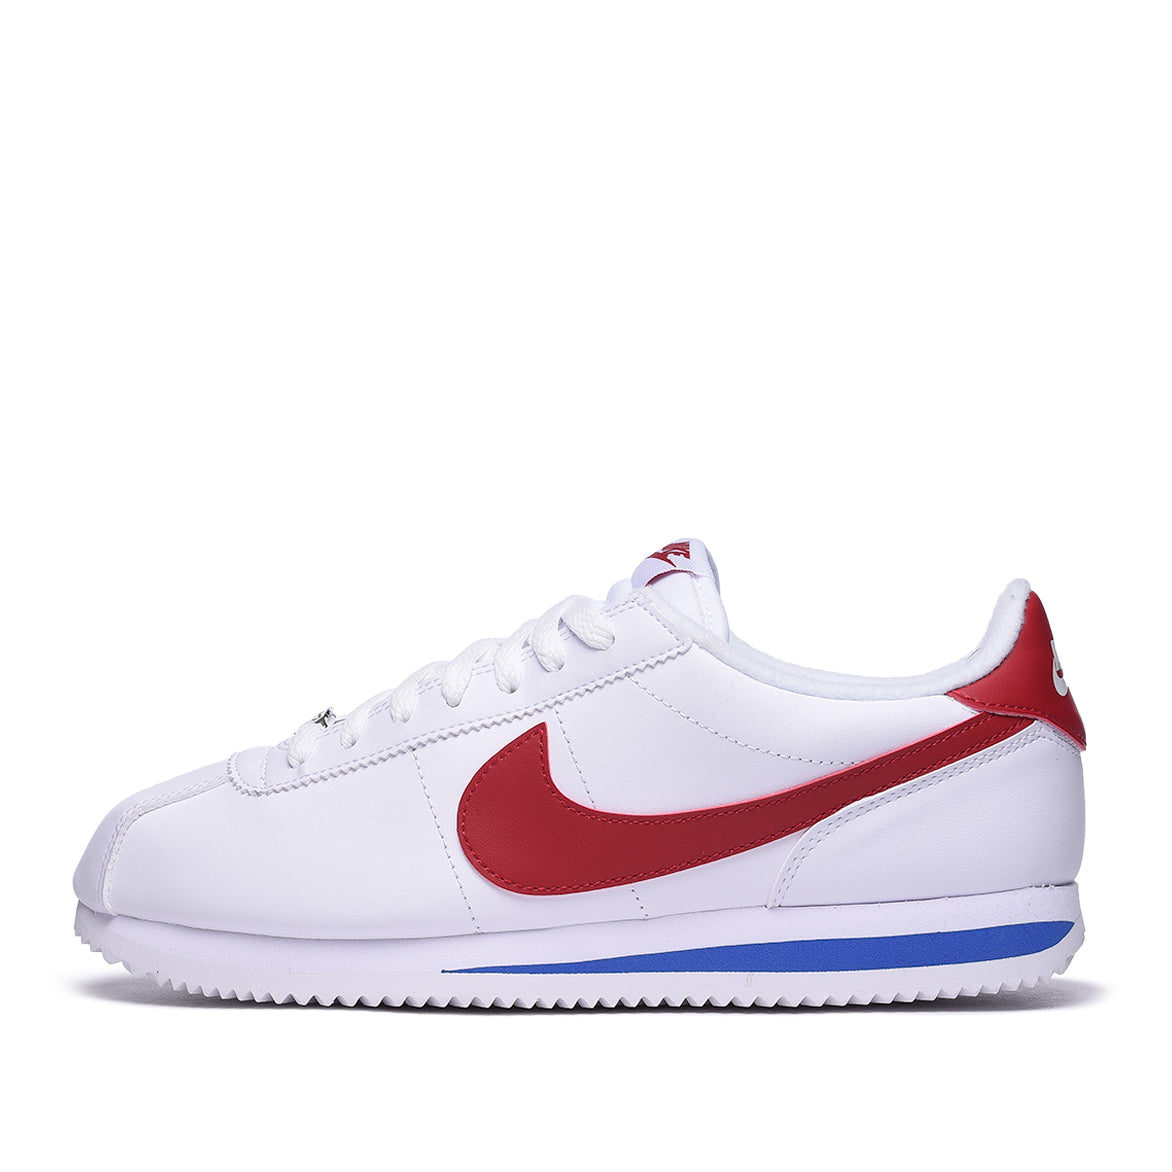 CORTEZ BASIC LEATHER - WHITE / VARSITY RED / GAME ROYAL